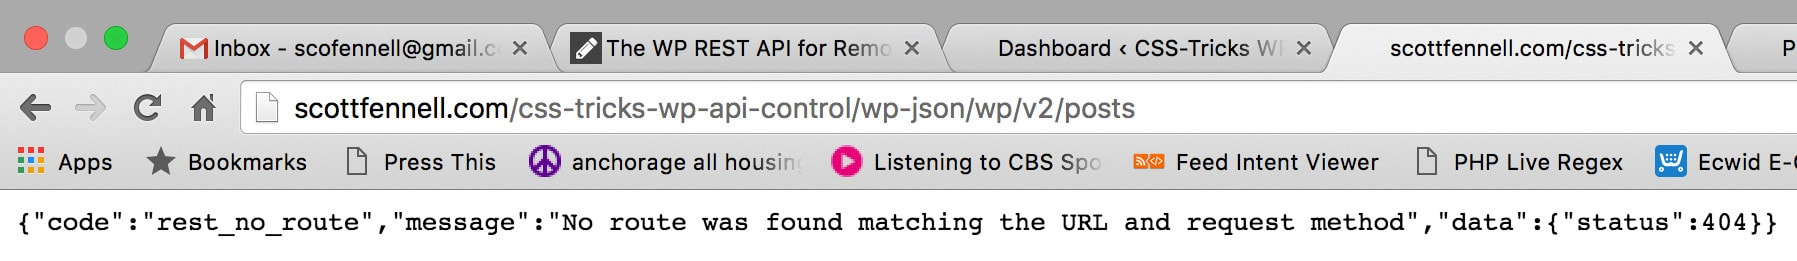 The WP REST API for Remote Control WordPress   CSS-Tricks